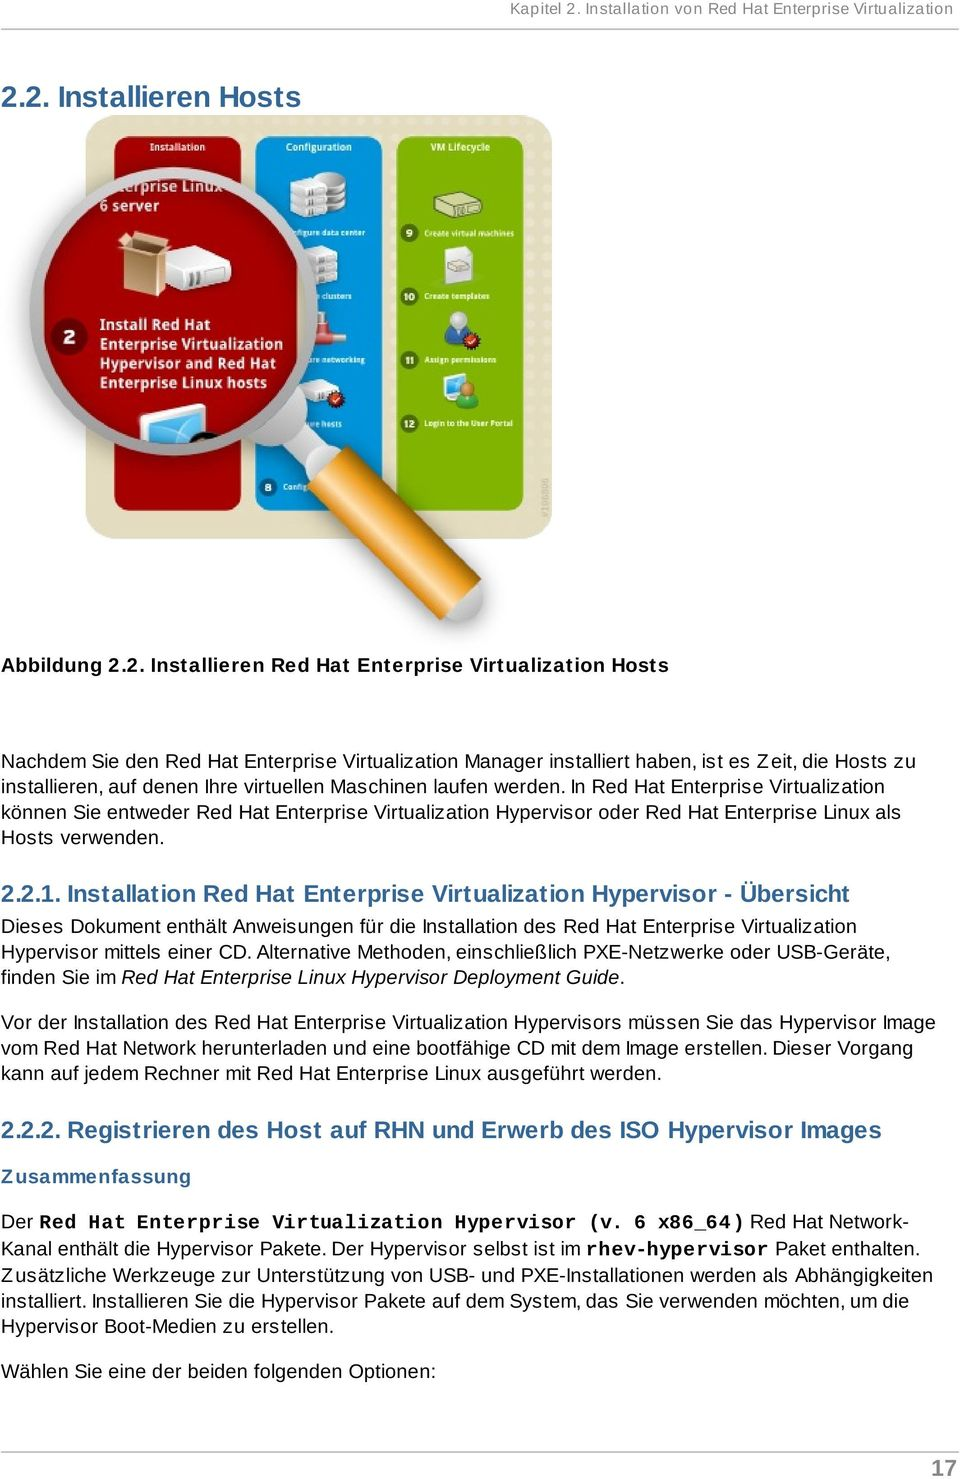 2. Installieren Hosts Abbildung 2.2. Installieren Red Hat Enterprise Virtualization Hosts Nachdem Sie den Red Hat Enterprise Virtualization Manager installiert haben, ist es Z eit, die Hosts zu